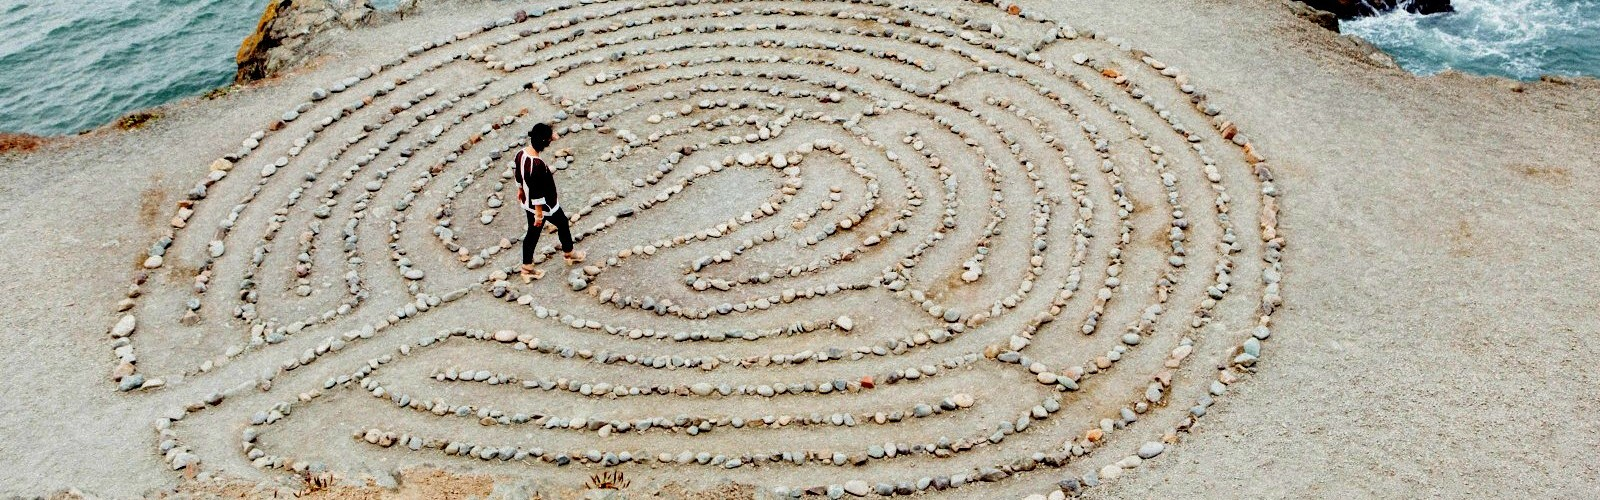 Labyrinth on beach